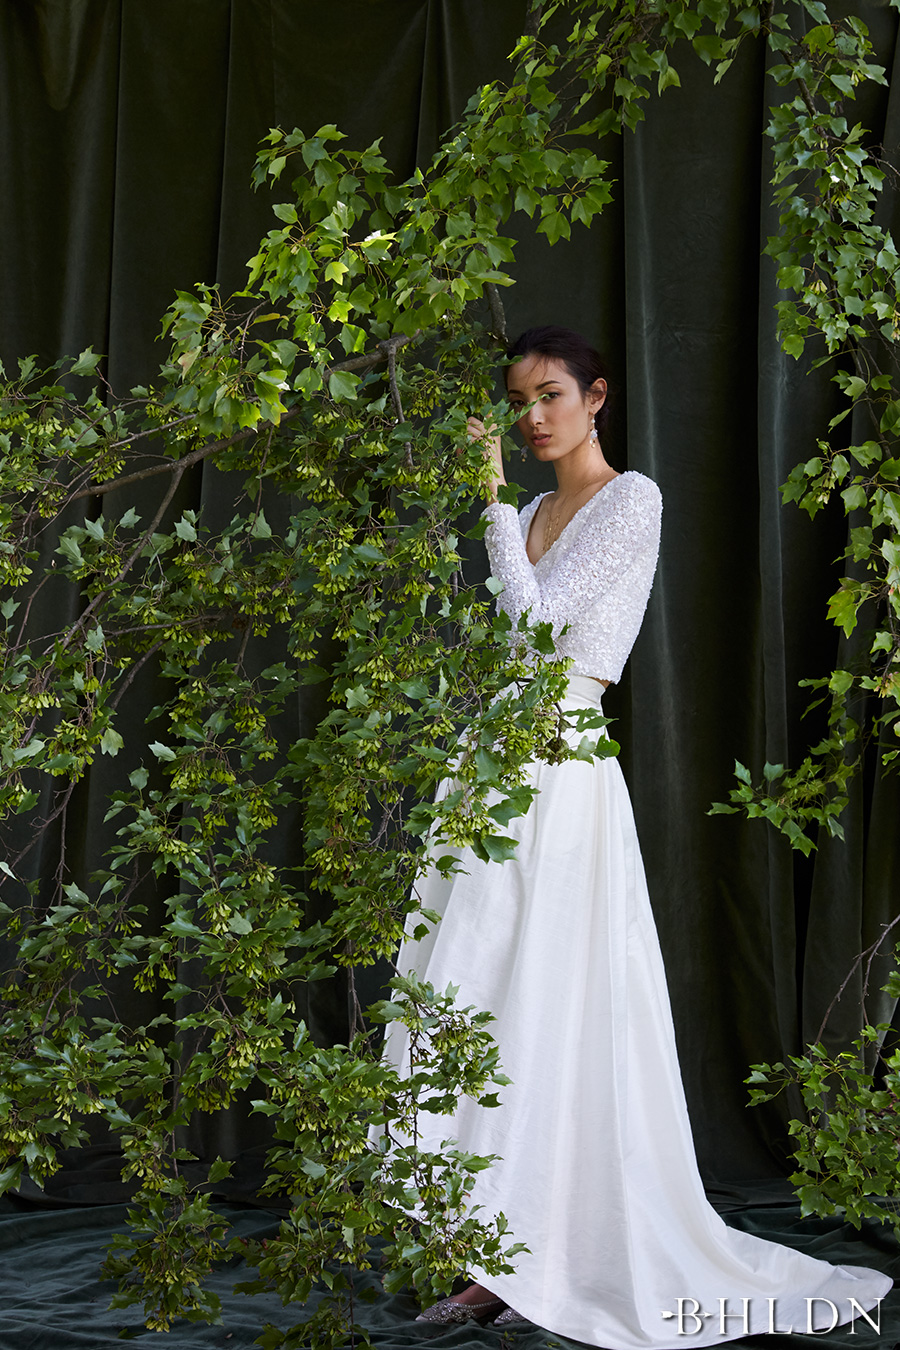 Behind the curtain bhldn s chic fall bridal collection for Wedding dresses like bhldn